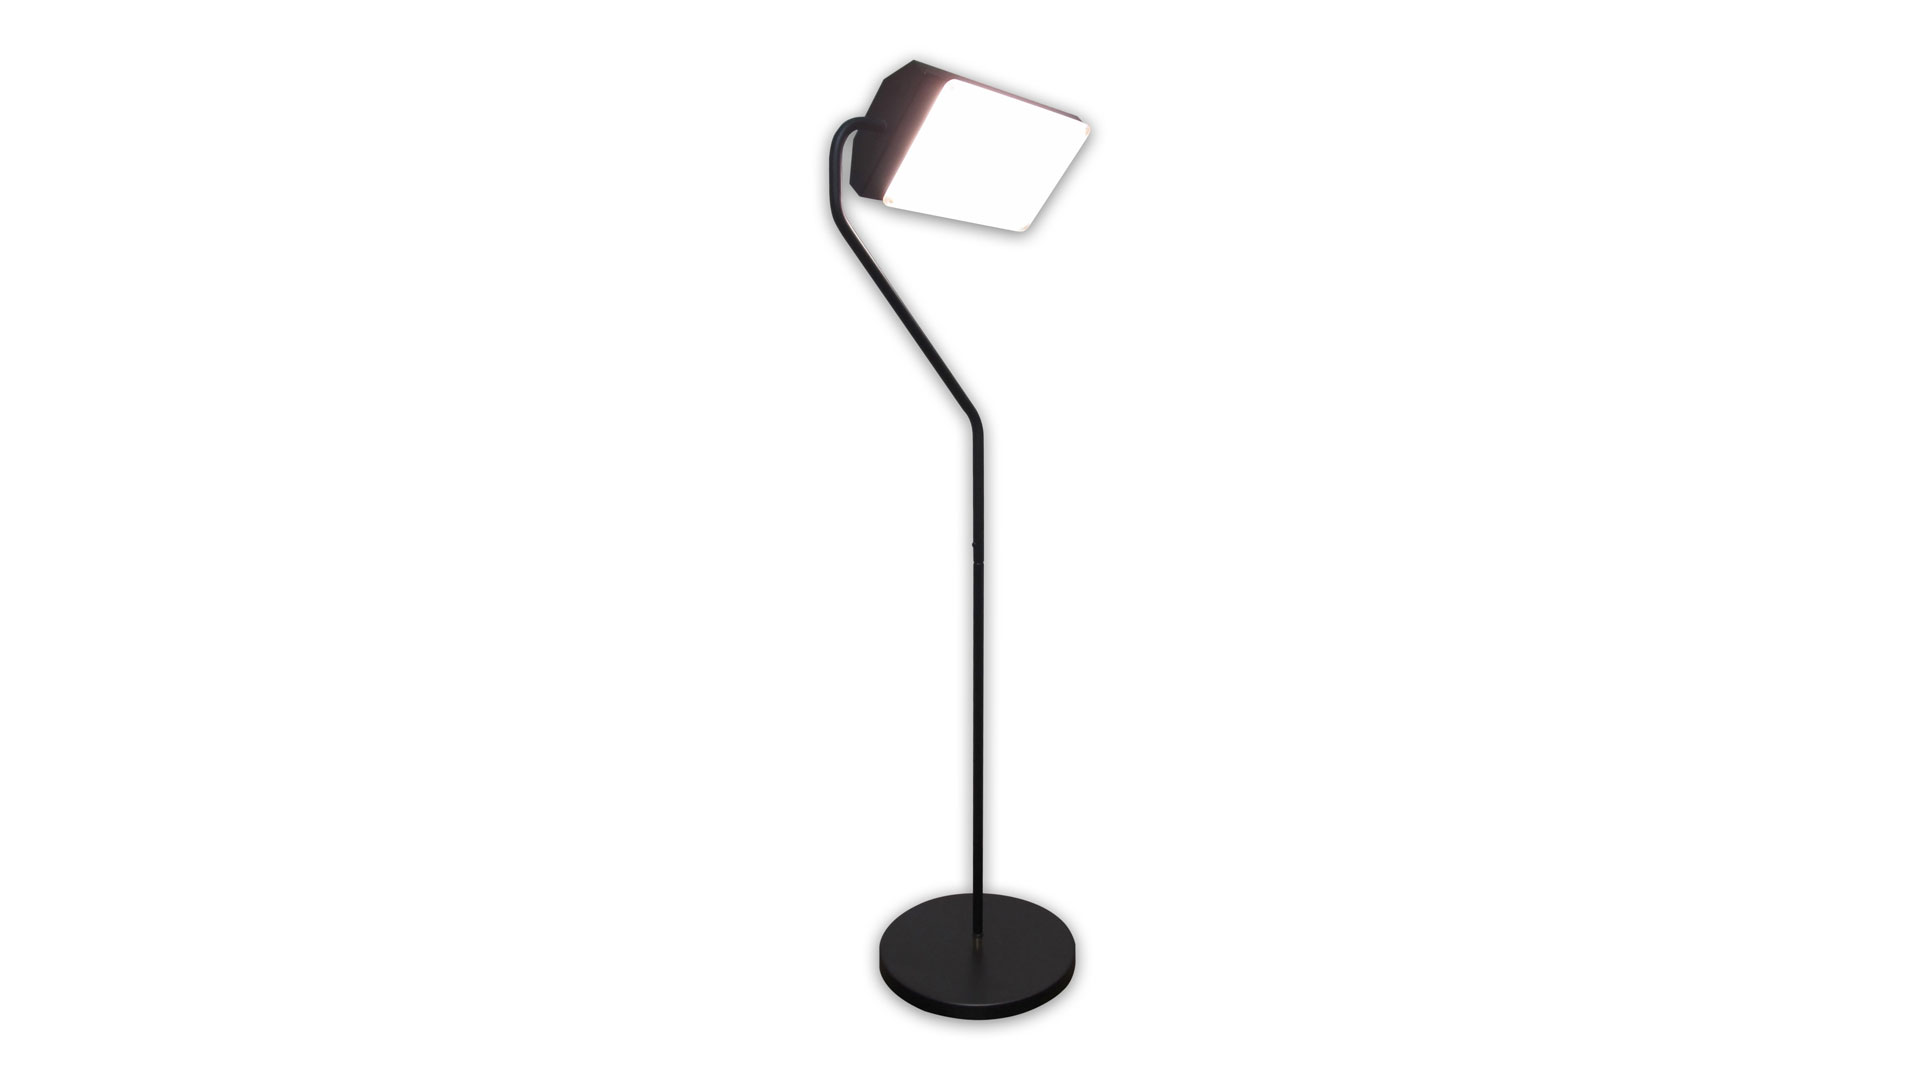 Northern Light Technologies Flamingo Floor Lamp Review